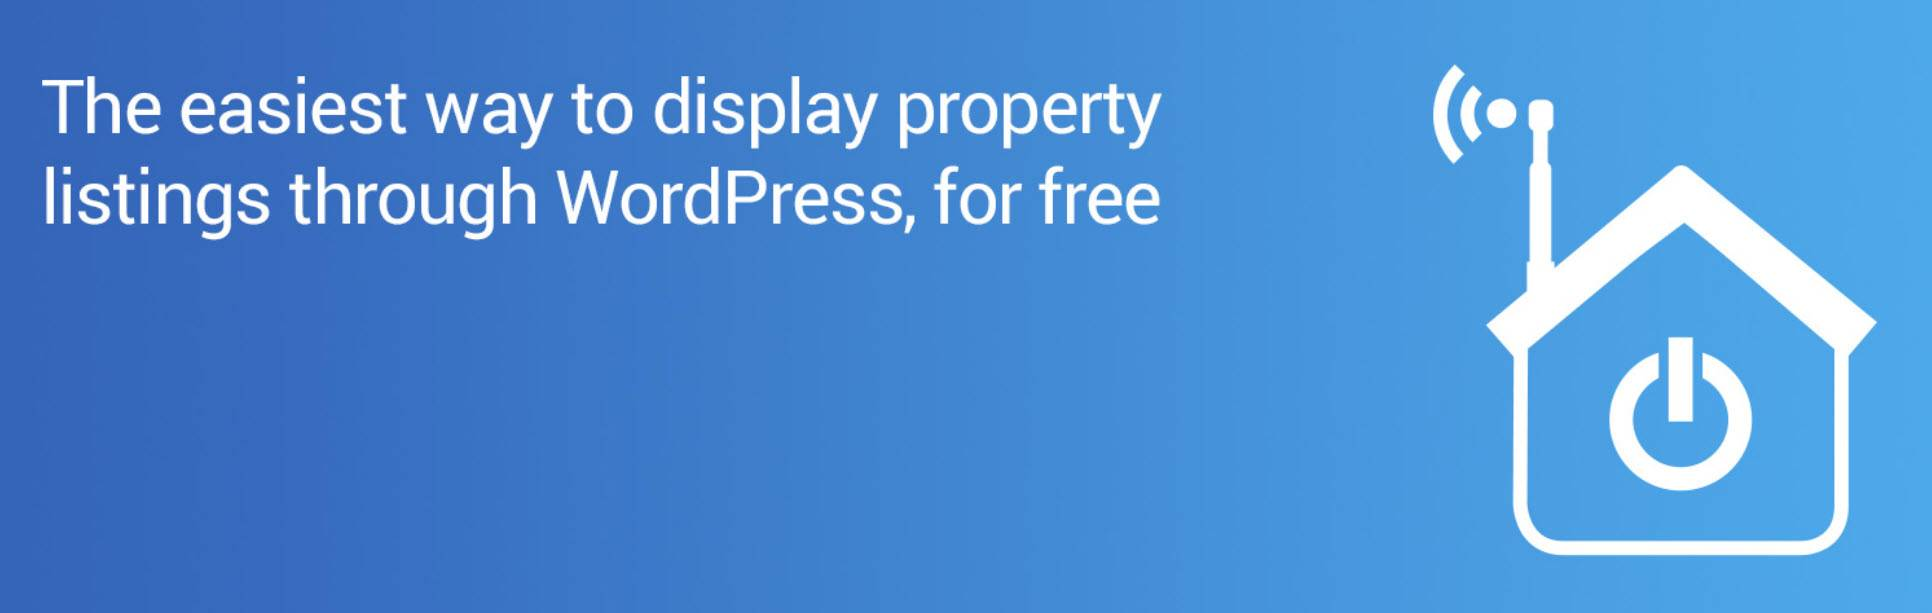 Best WordPress Plugins for Real Estate - Easy property listing